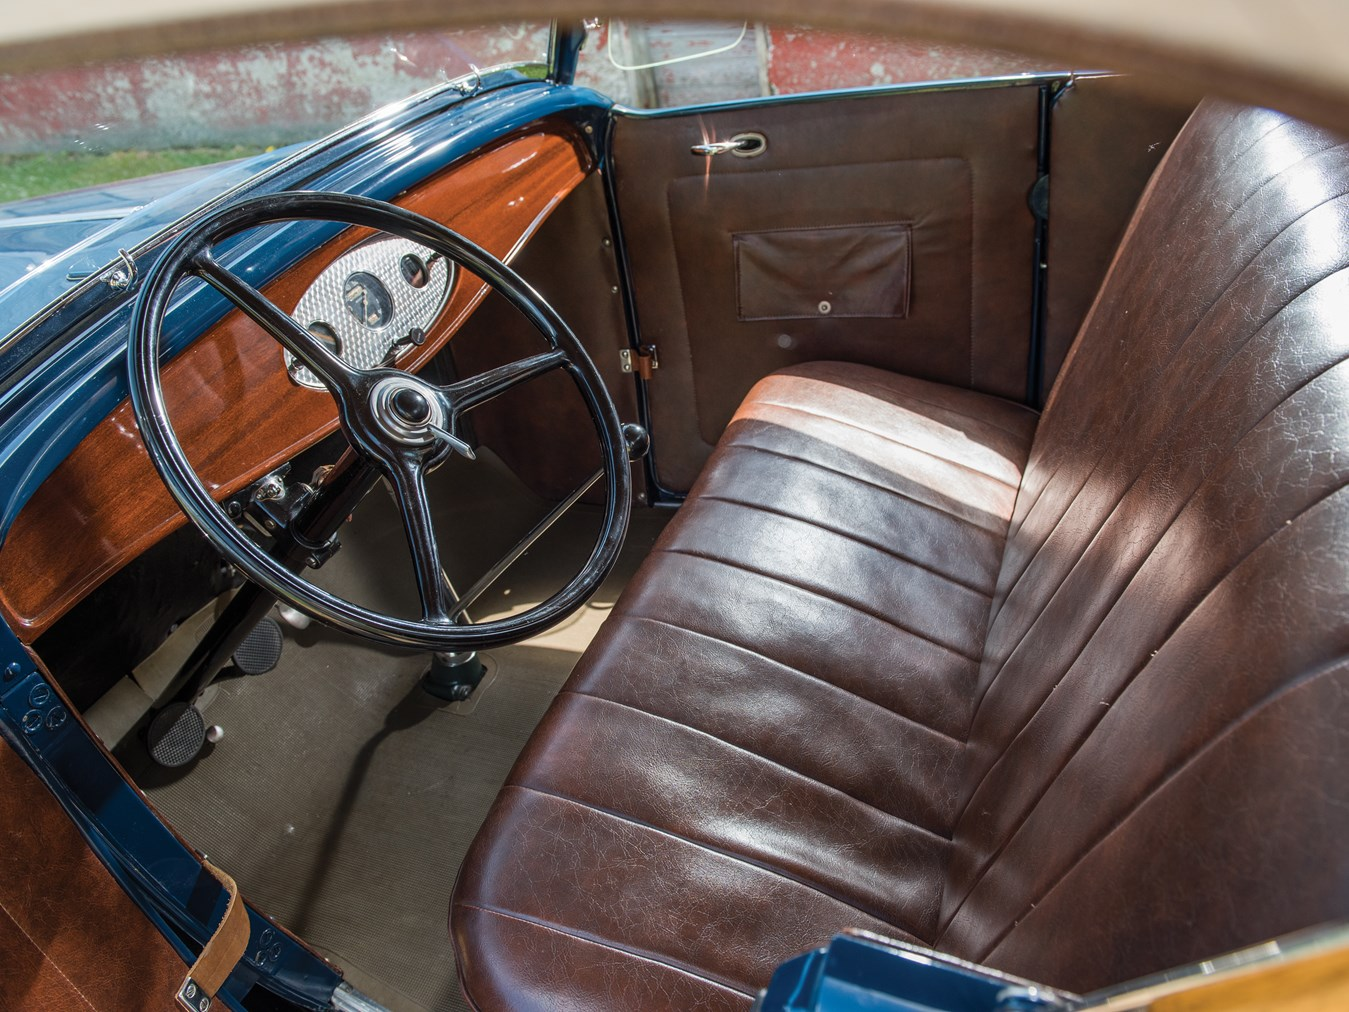 The driver's seat of your very own V8 Ford - the place so many of Henry Ford's customers wanted to be.